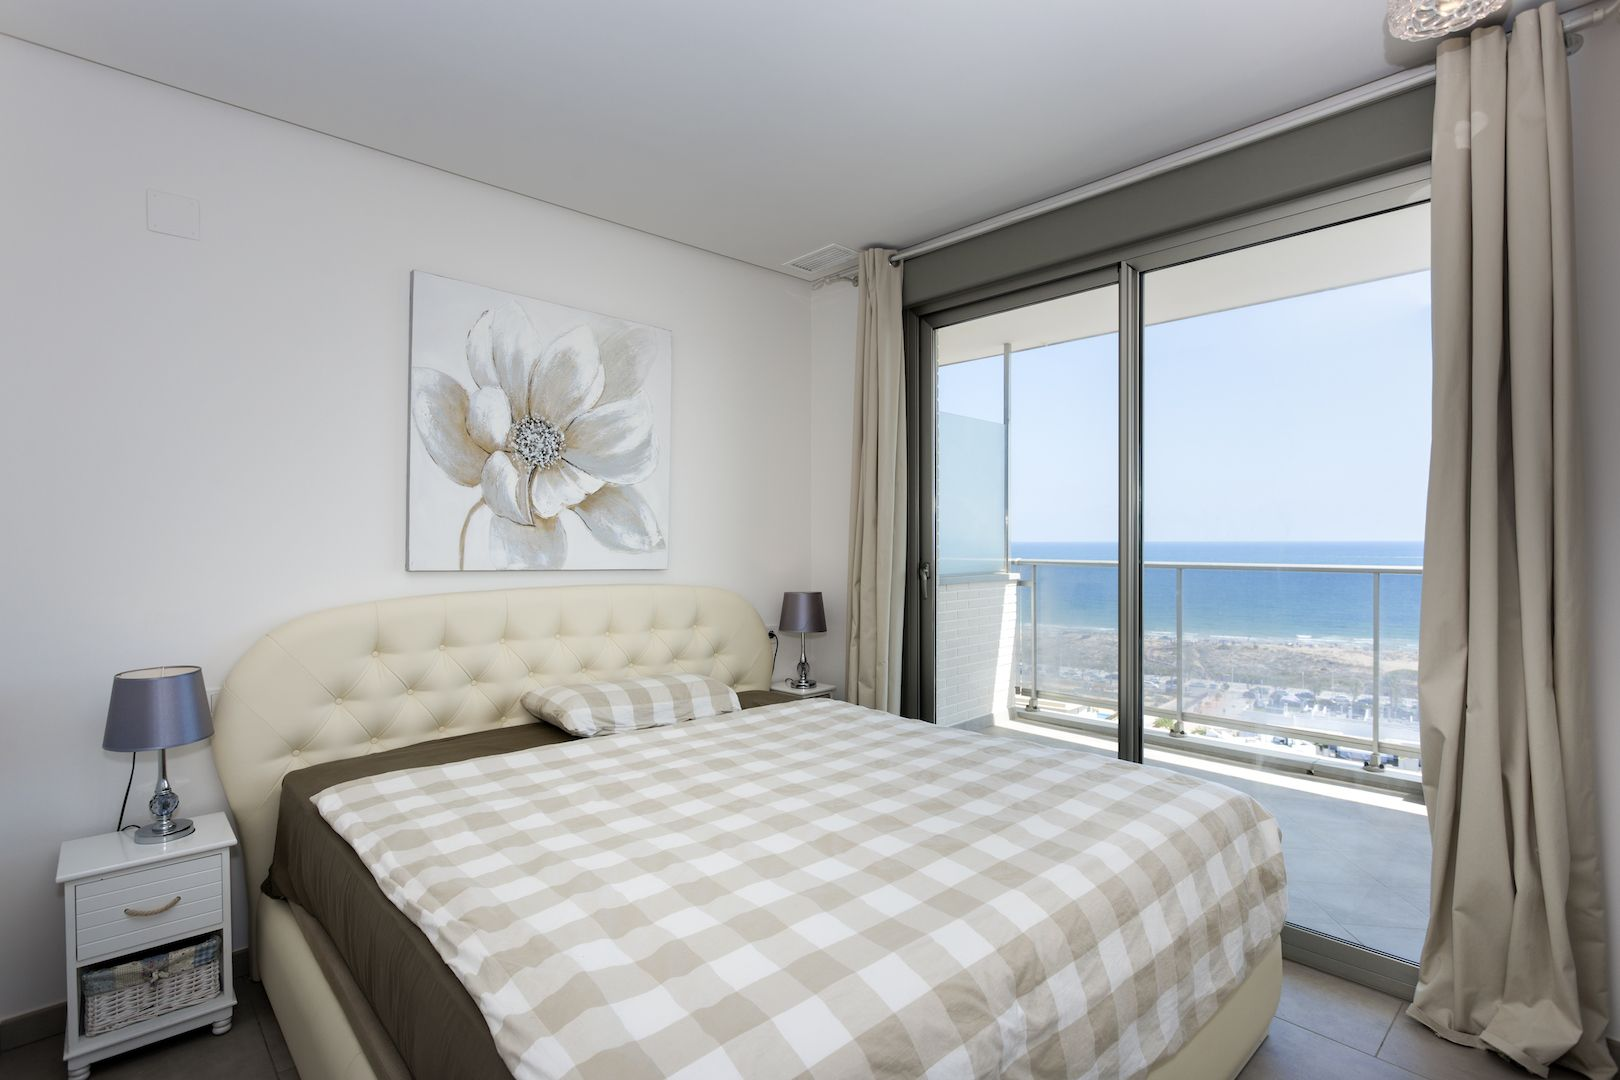 Flats and penthouses of 2, 3 and 4 bedrooms a few meters from the sea in Arenales del Sol. 1